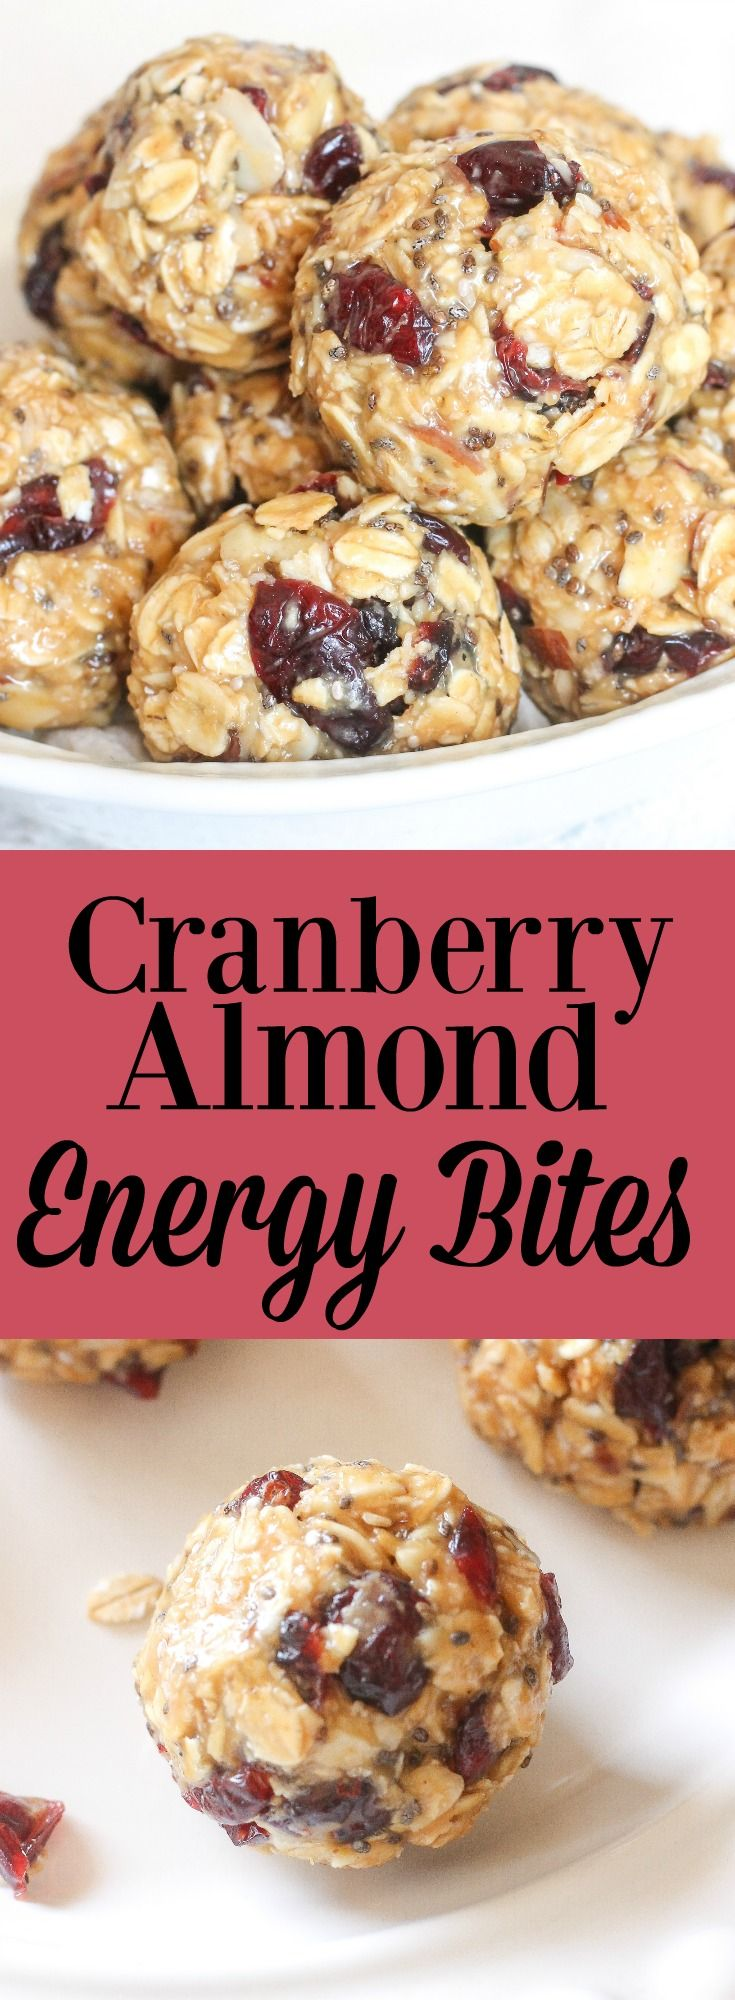 Cranberry Almond Energy Bites// Kathryn's Kitchen Blog